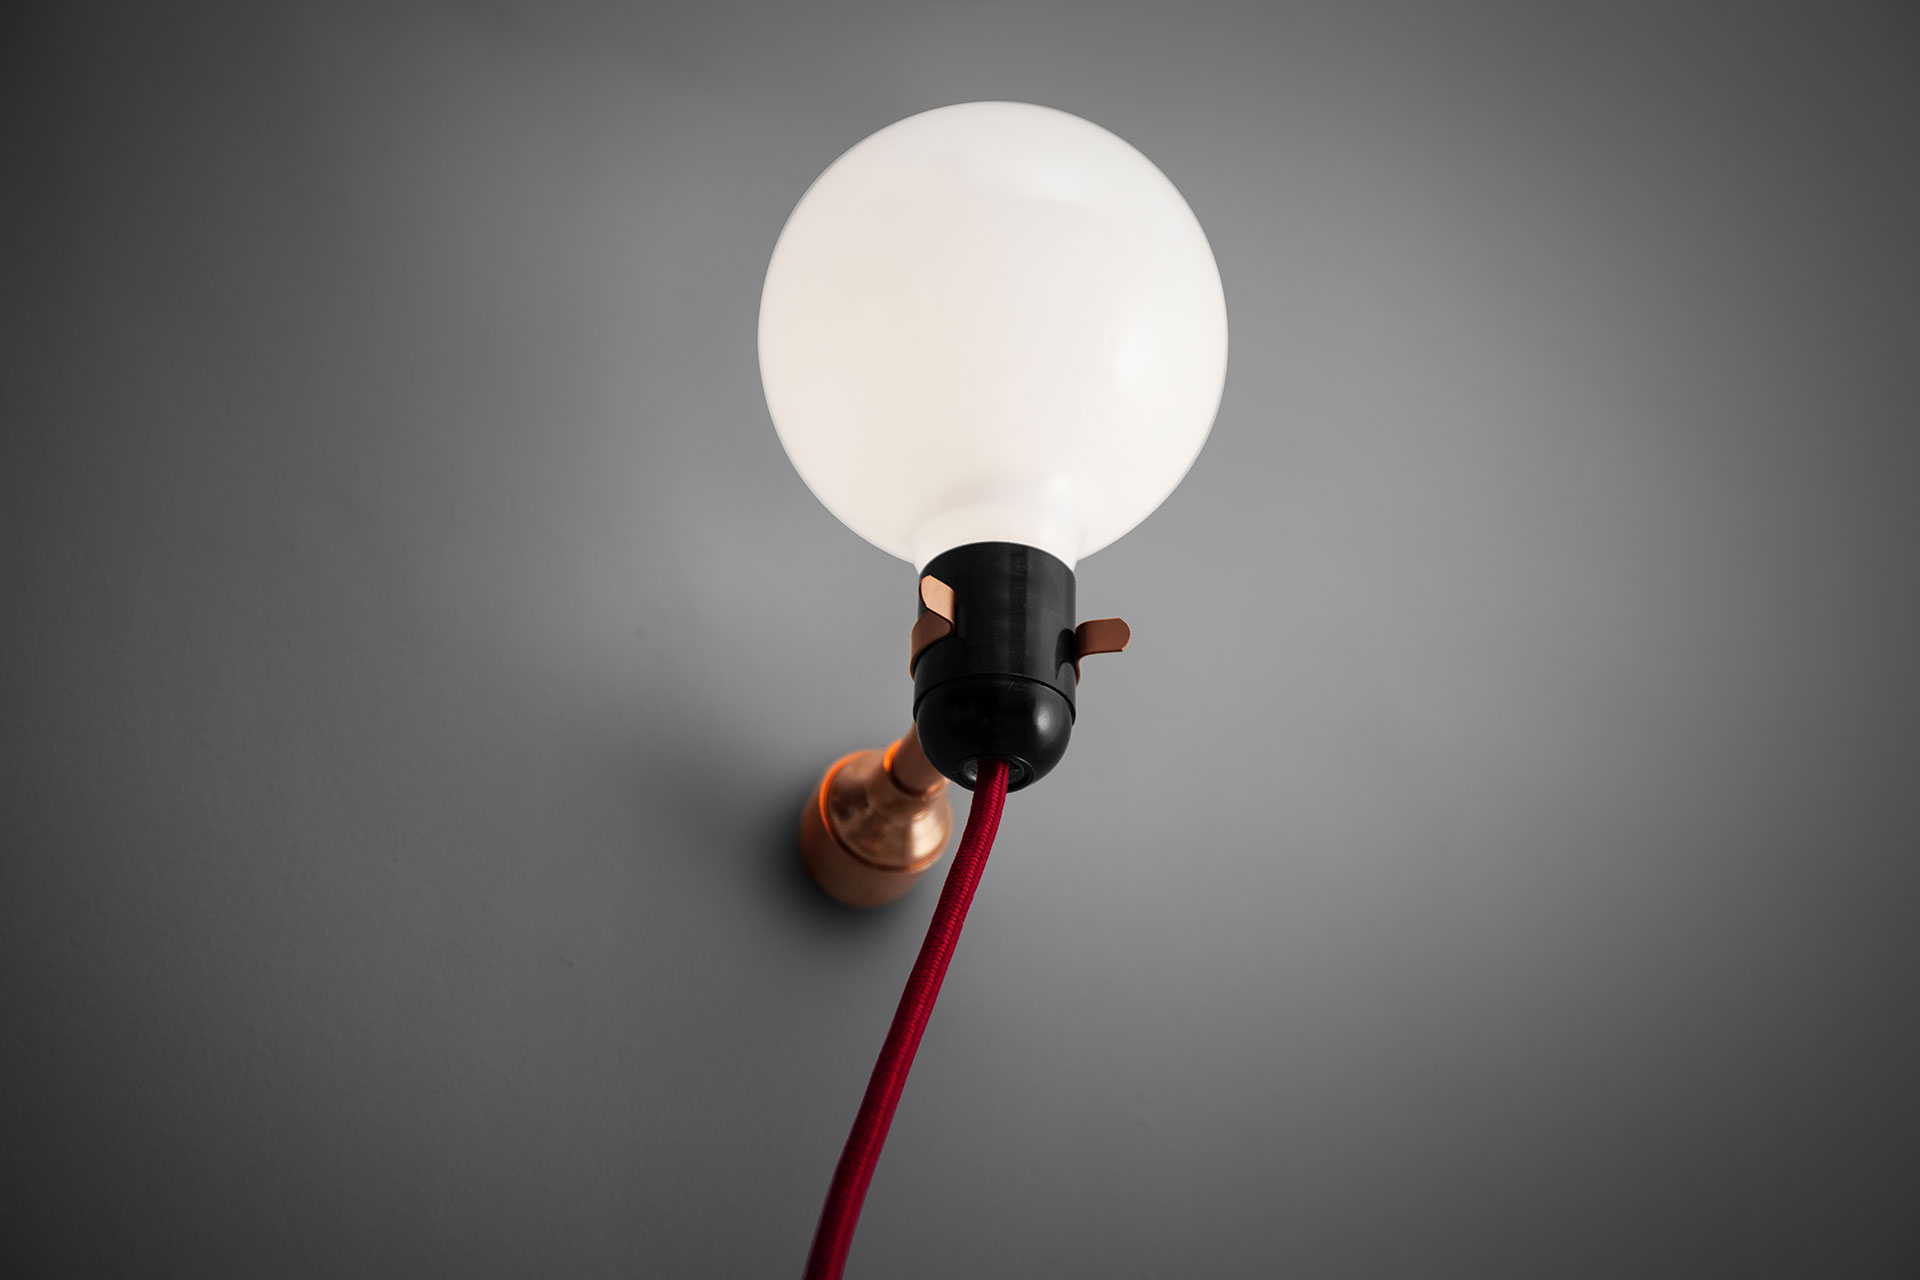 Balloon wall lamp in copper or brass